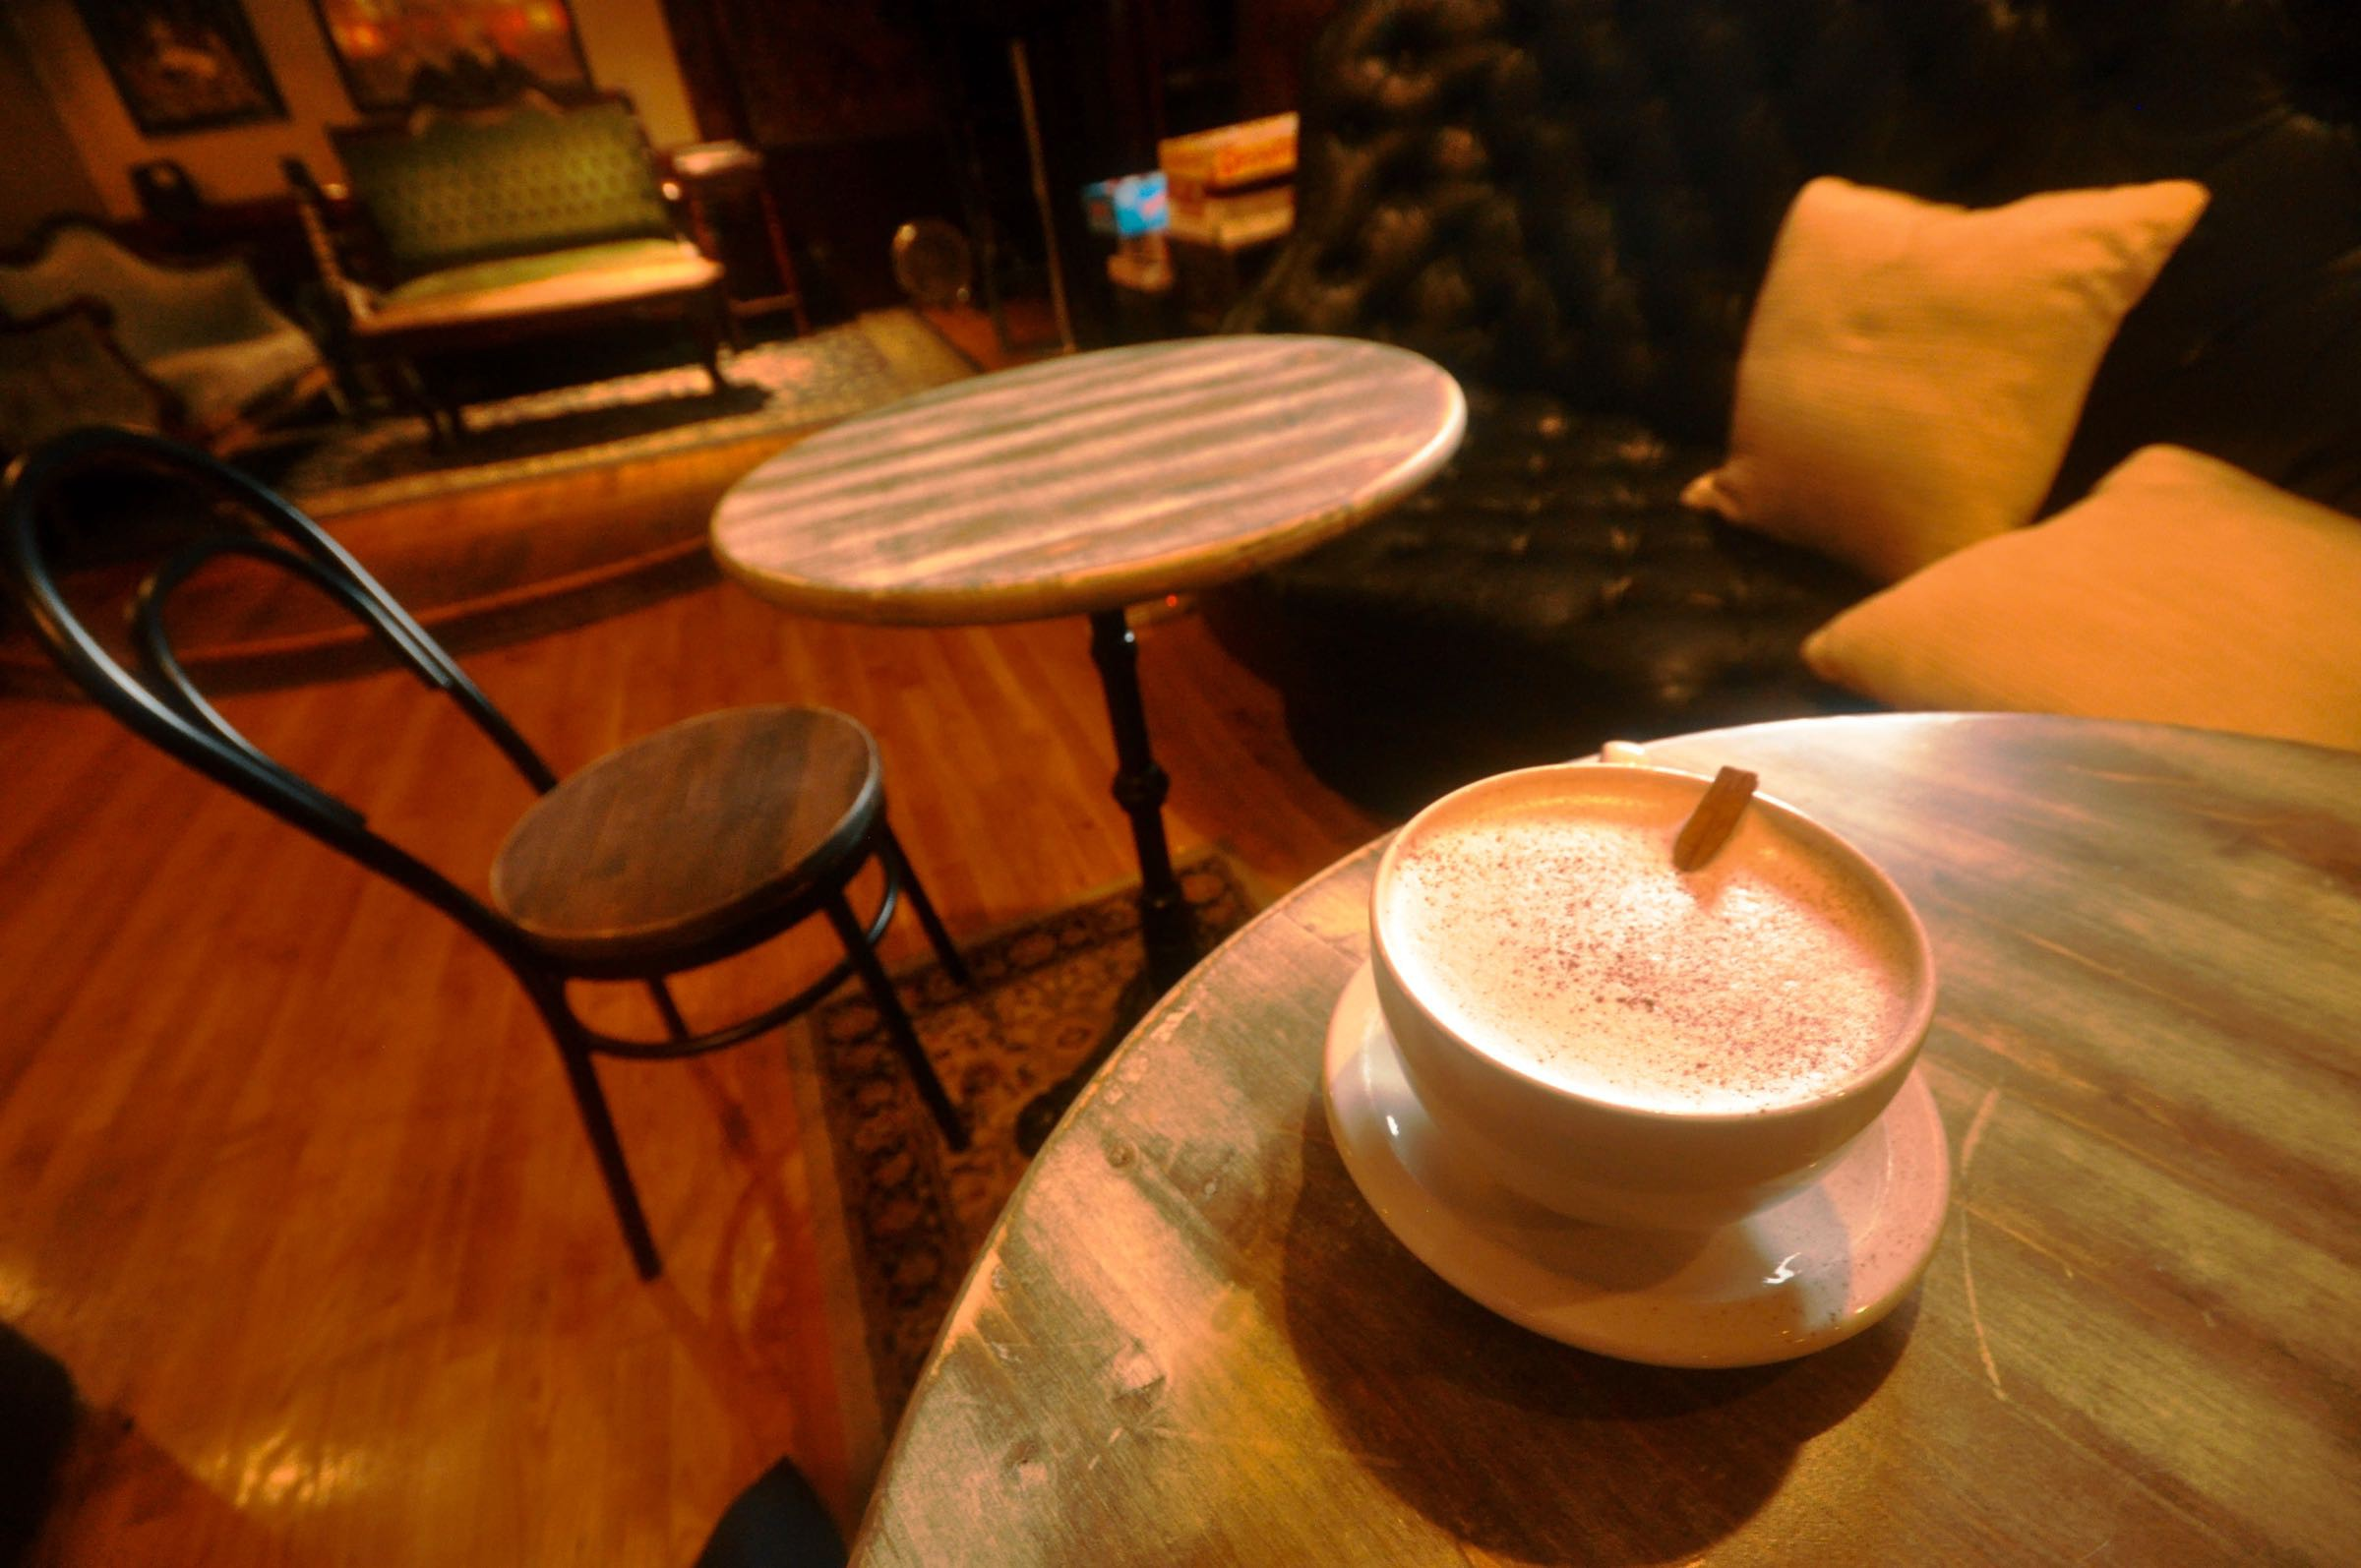 Those coming to the space for the first time as a café  will likely find a its many homey nooks appealing.